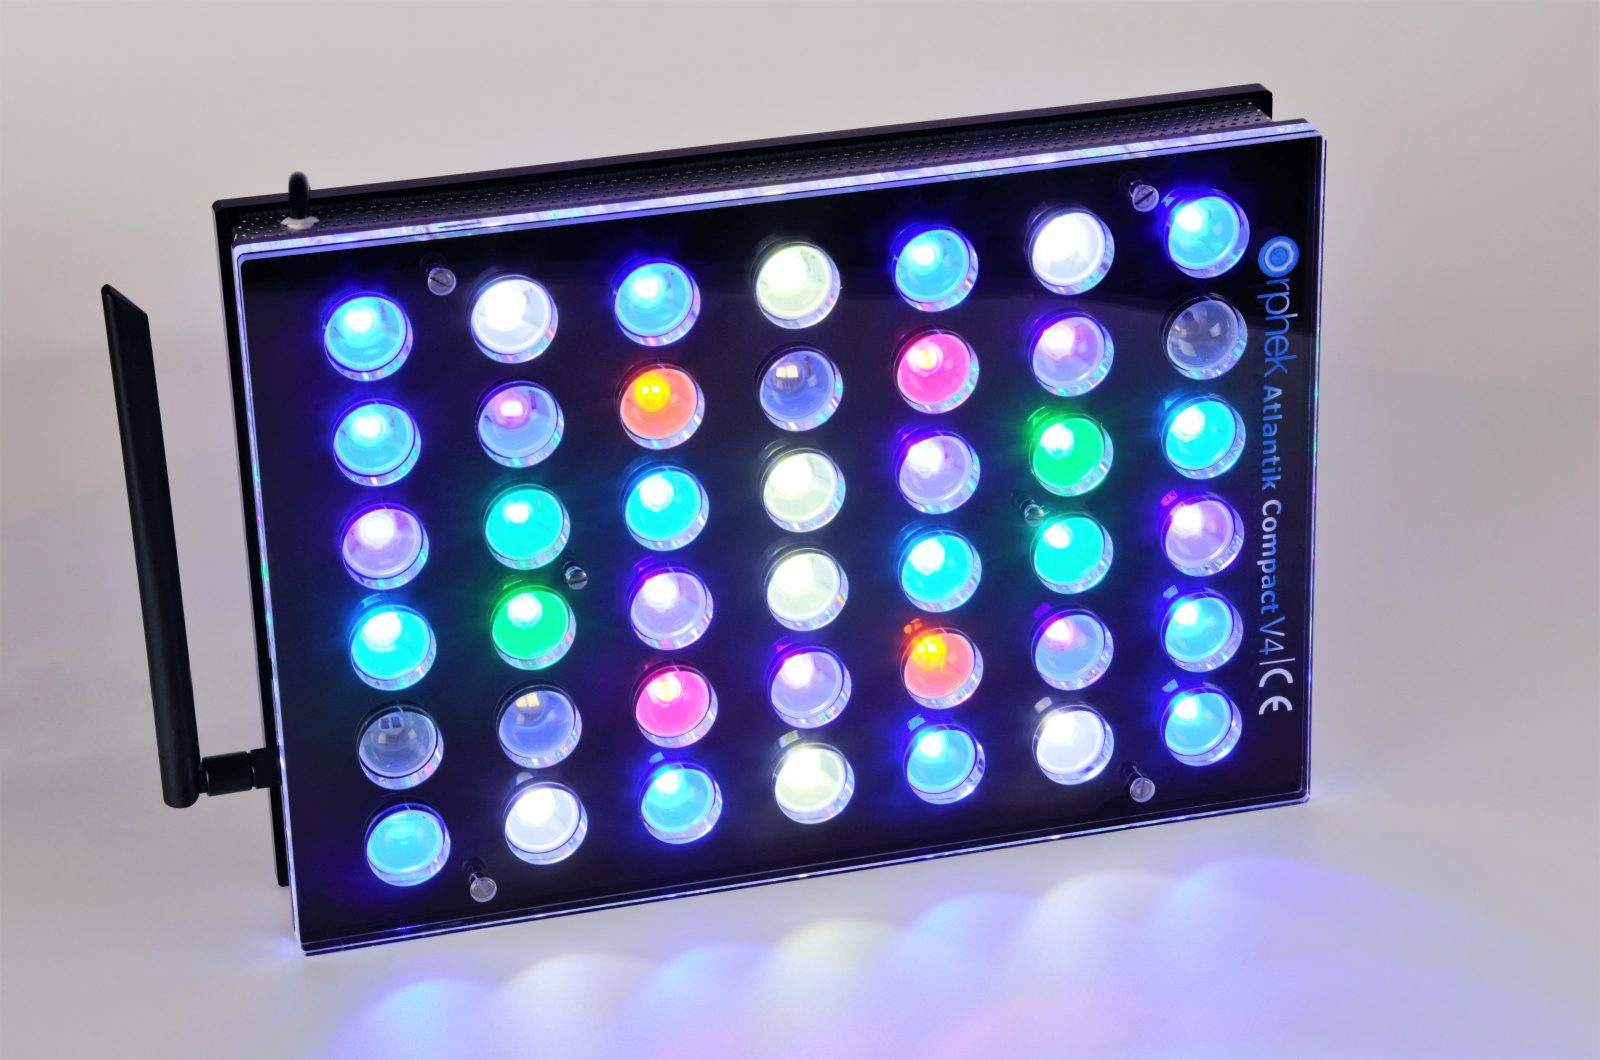 Eclairage Aquarium Led Avis Atlantik V4 Éclairage D 39aquarium Compact D 39aquarium